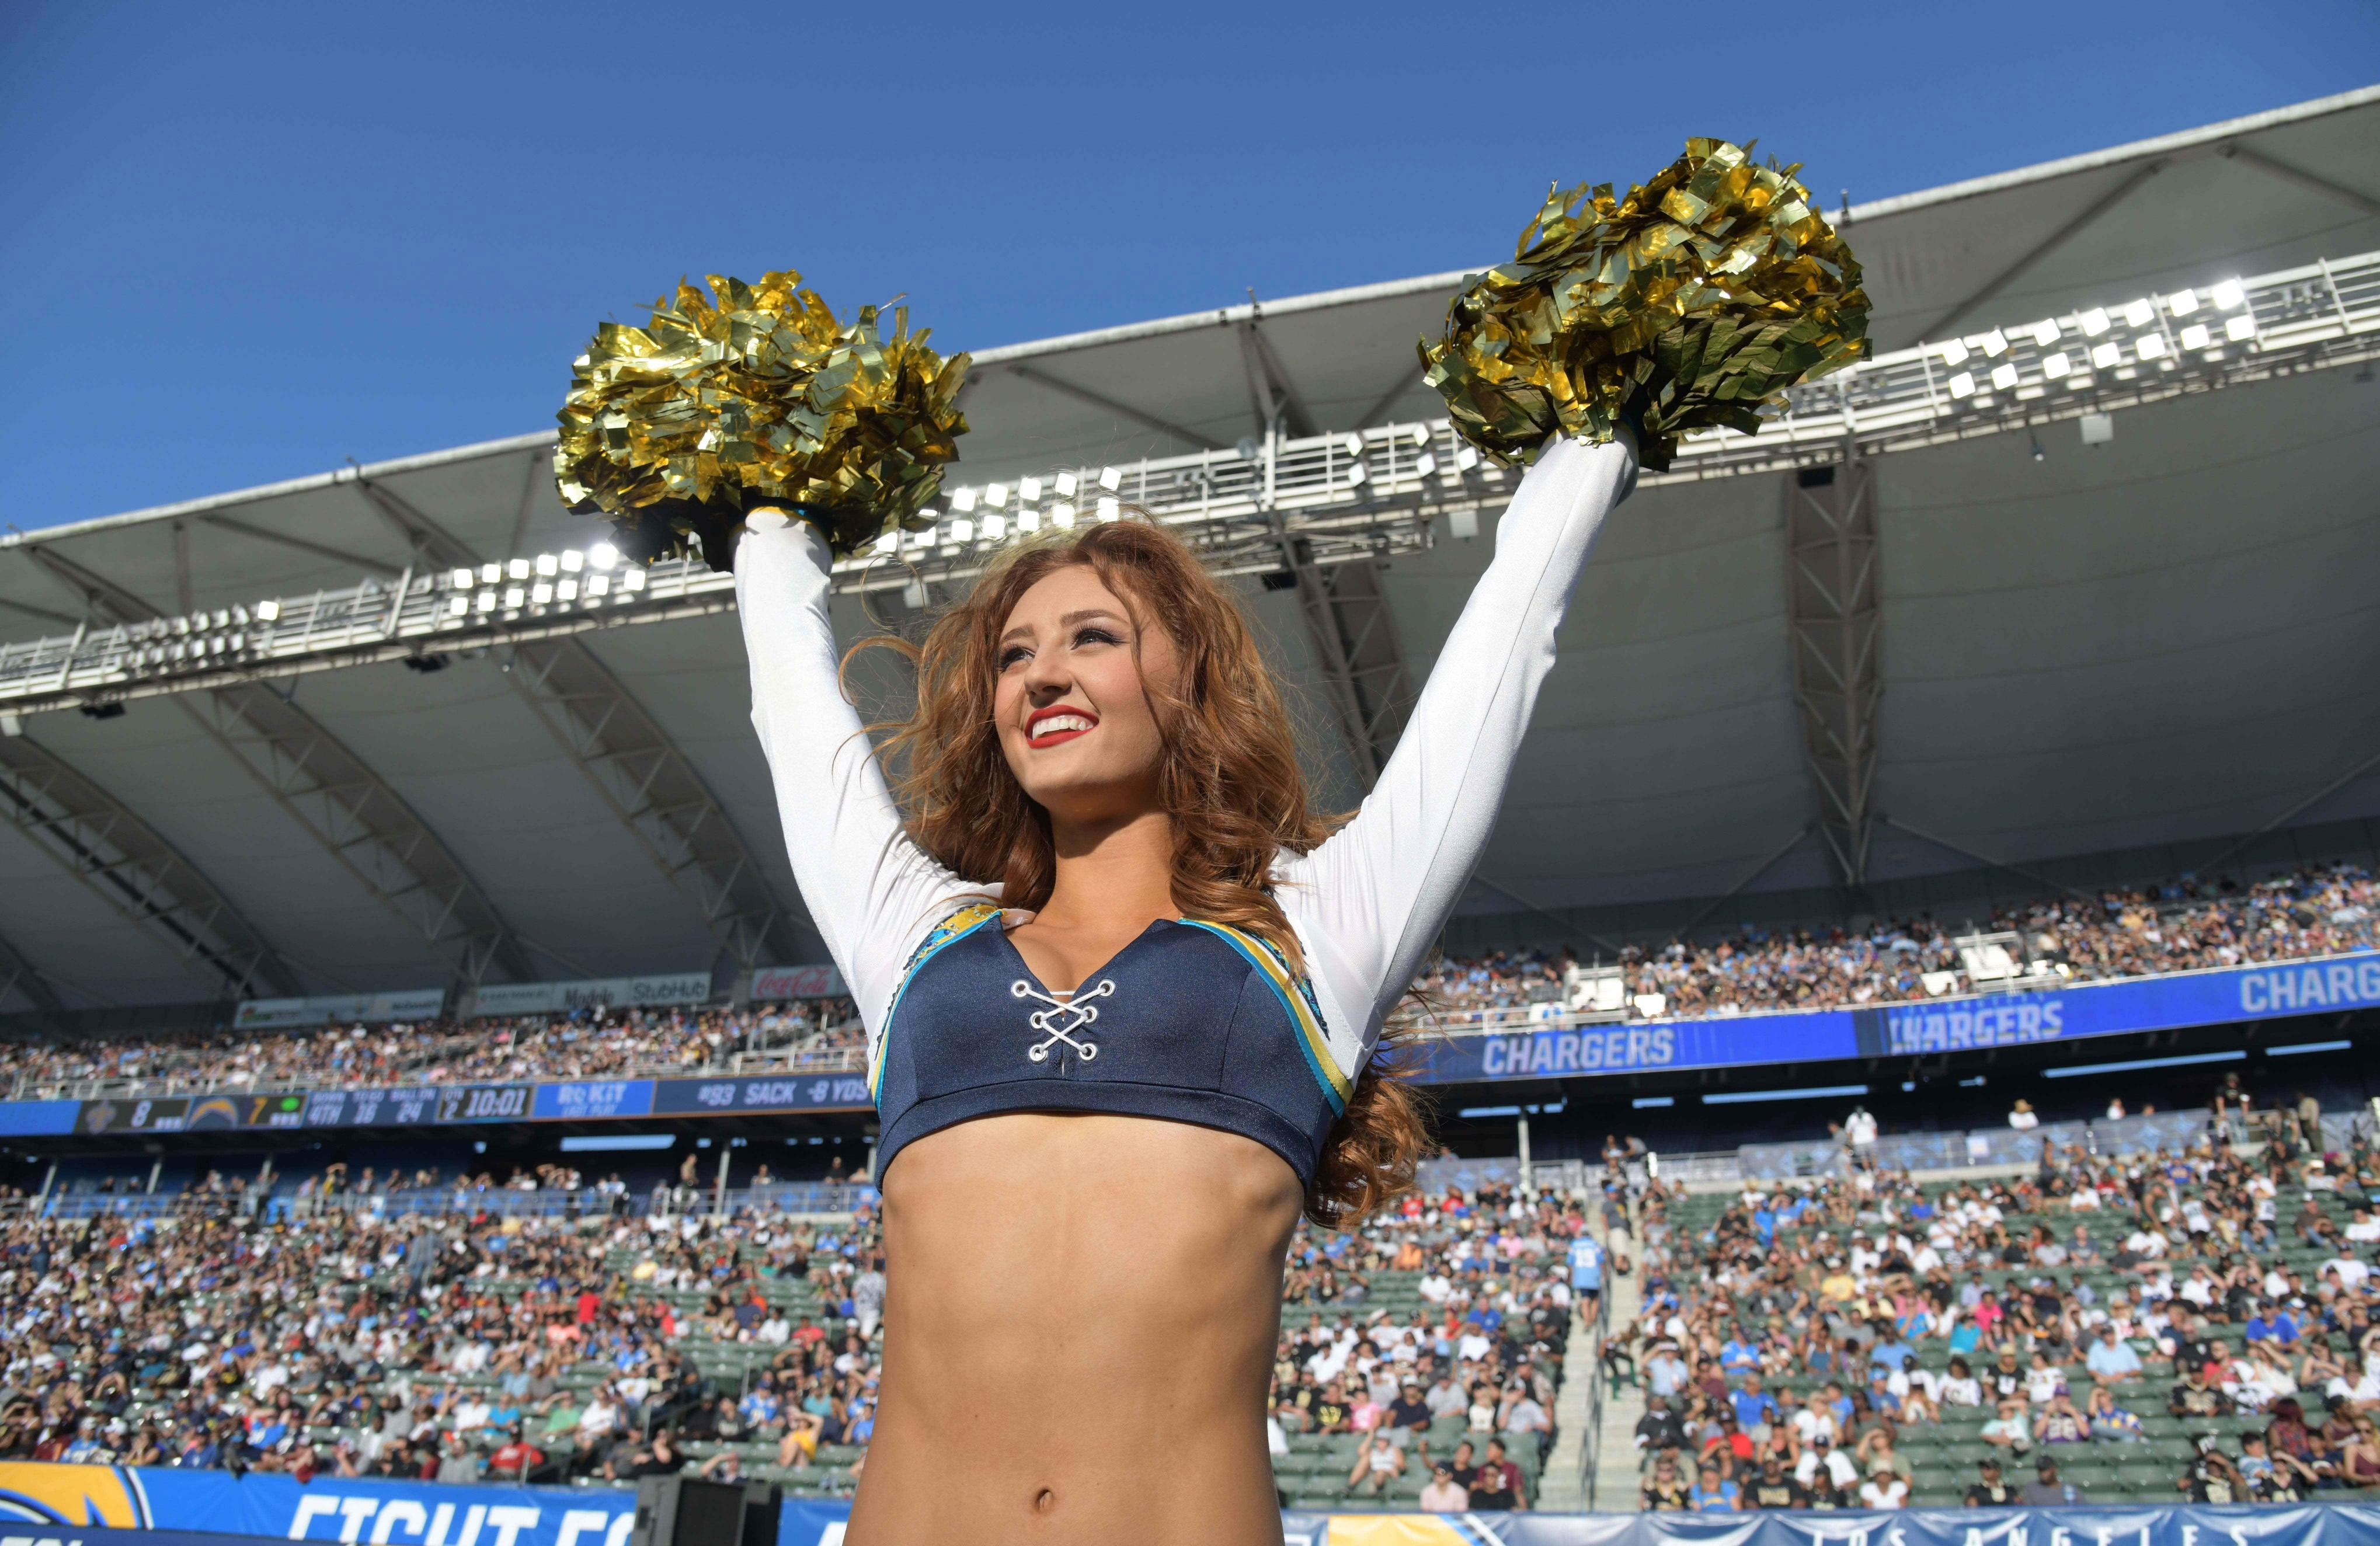 Tv Ratings Show How Little Fans In La Care About The Chargers